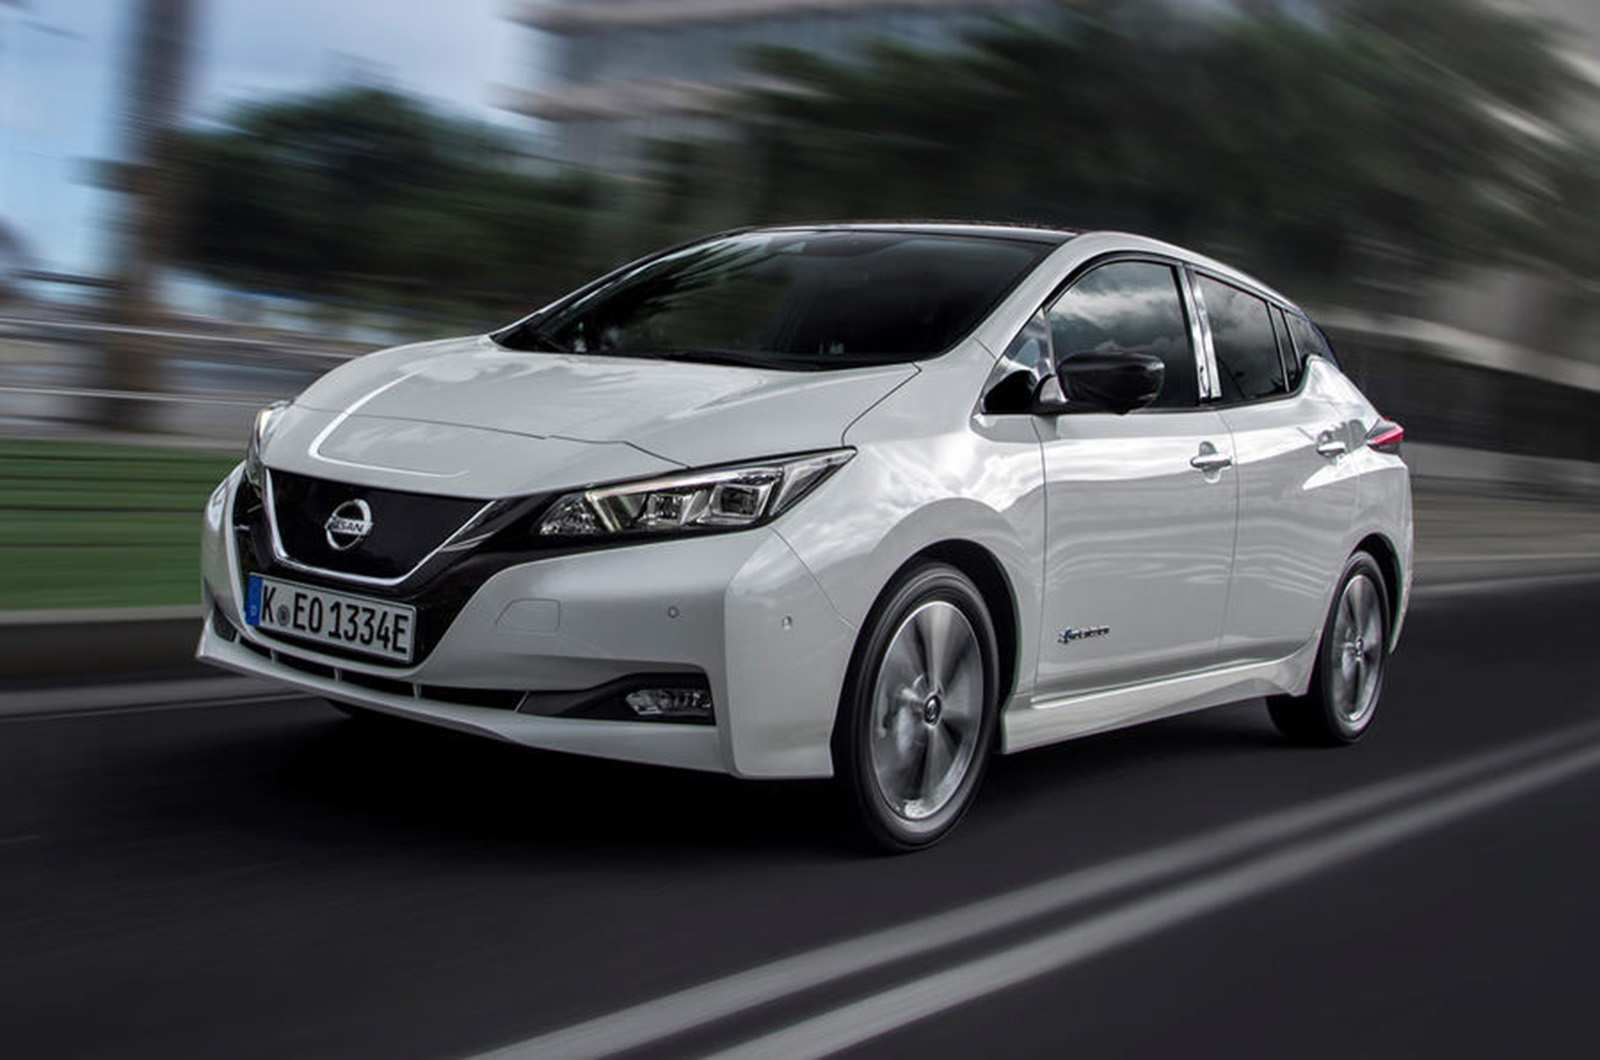 37 New Nissan Leaf Suv 2020 Interior